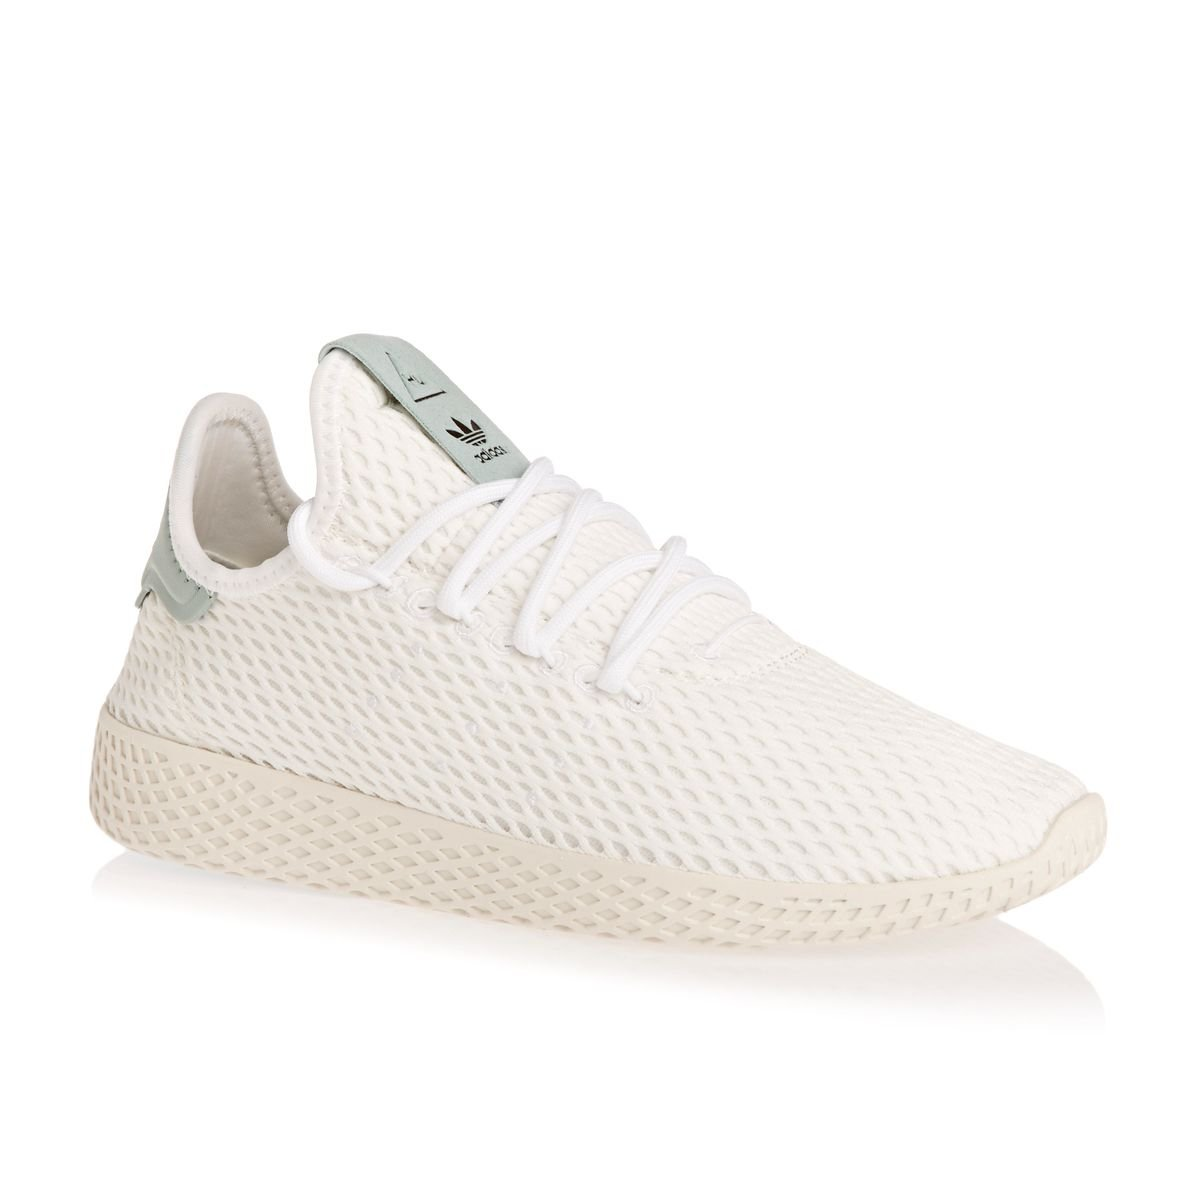 adidas Men's Pw Tennis Hu Sneaker B074J6G4V2 7 M US|Light Green, White